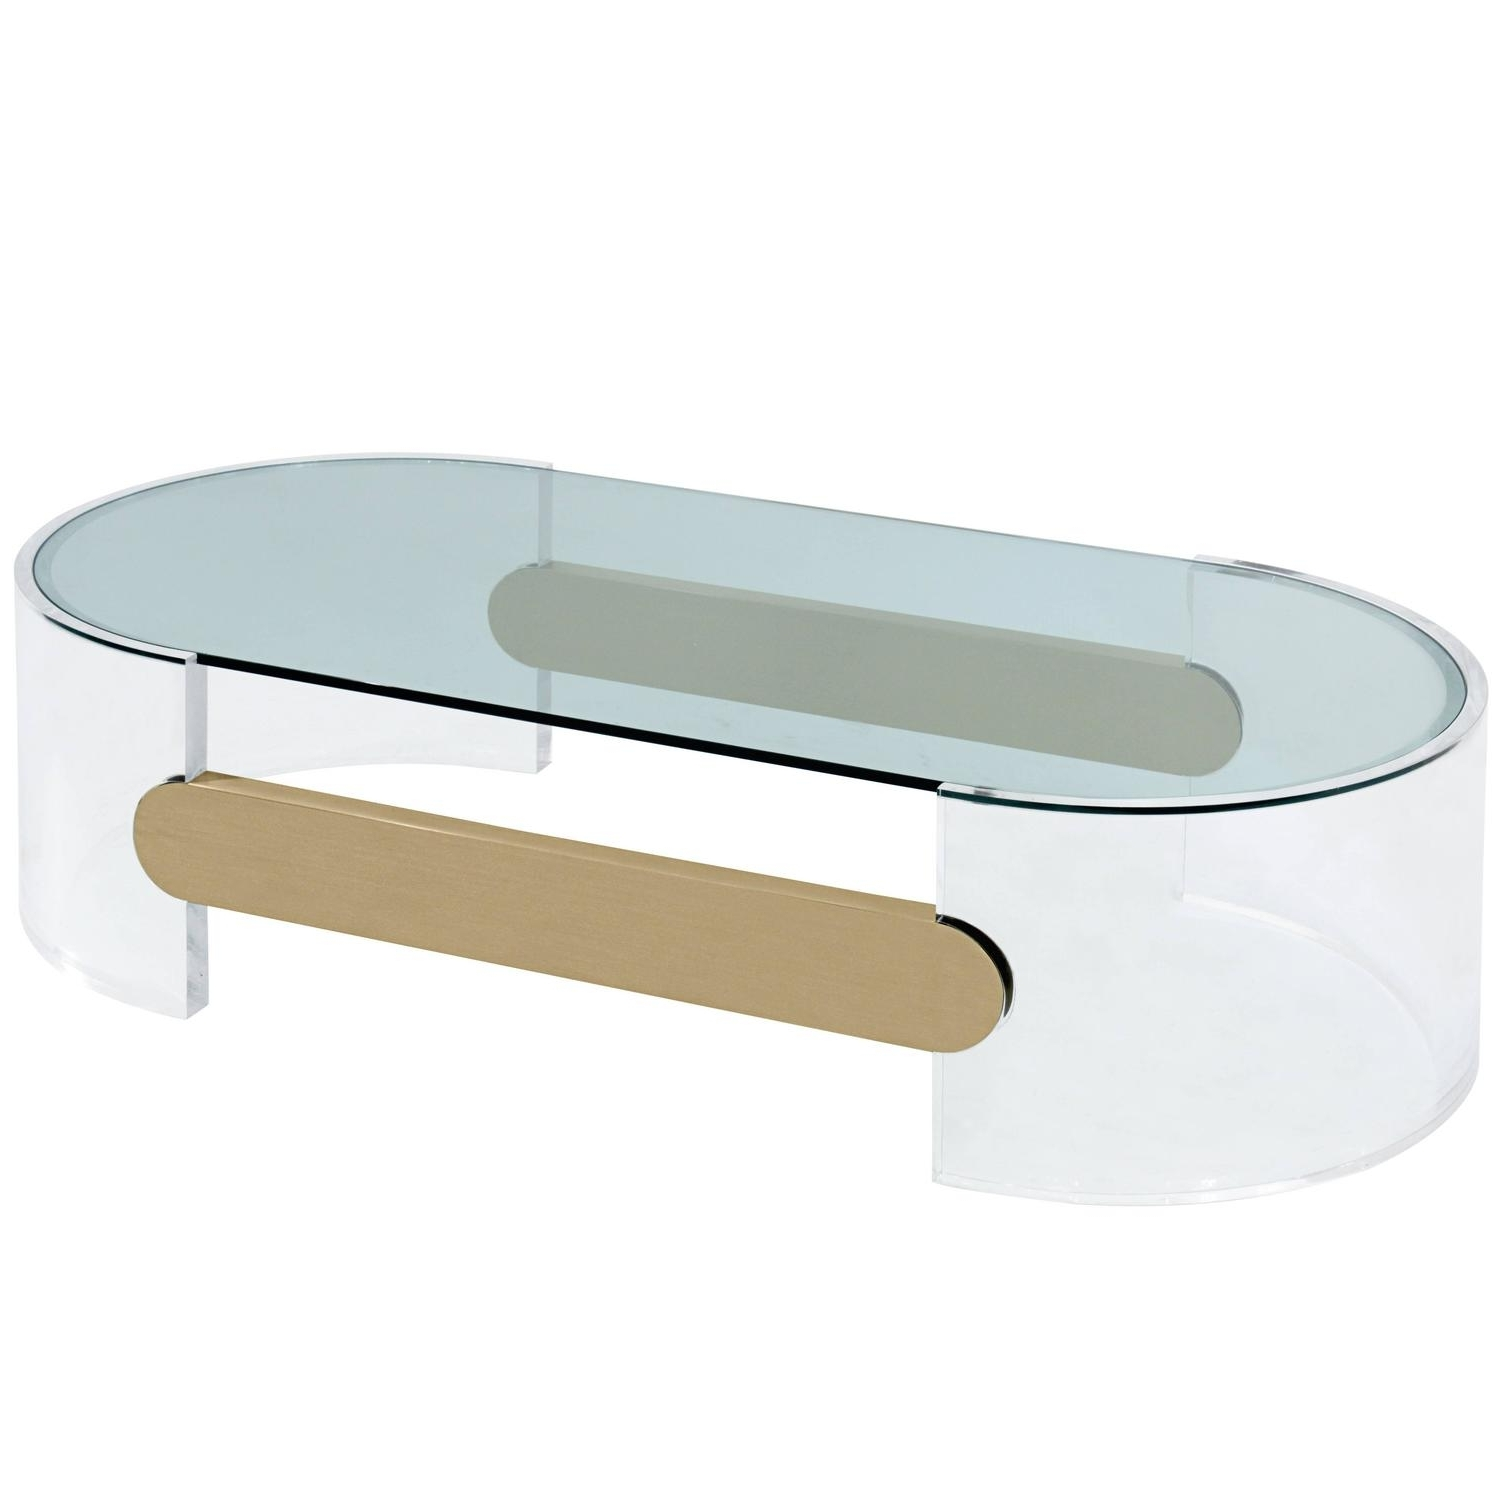 Coffee Table In Lucite With Brushed Brass Stretchersraymond Regarding Best And Newest Acrylic & Brushed Brass Coffee Tables (View 2 of 20)